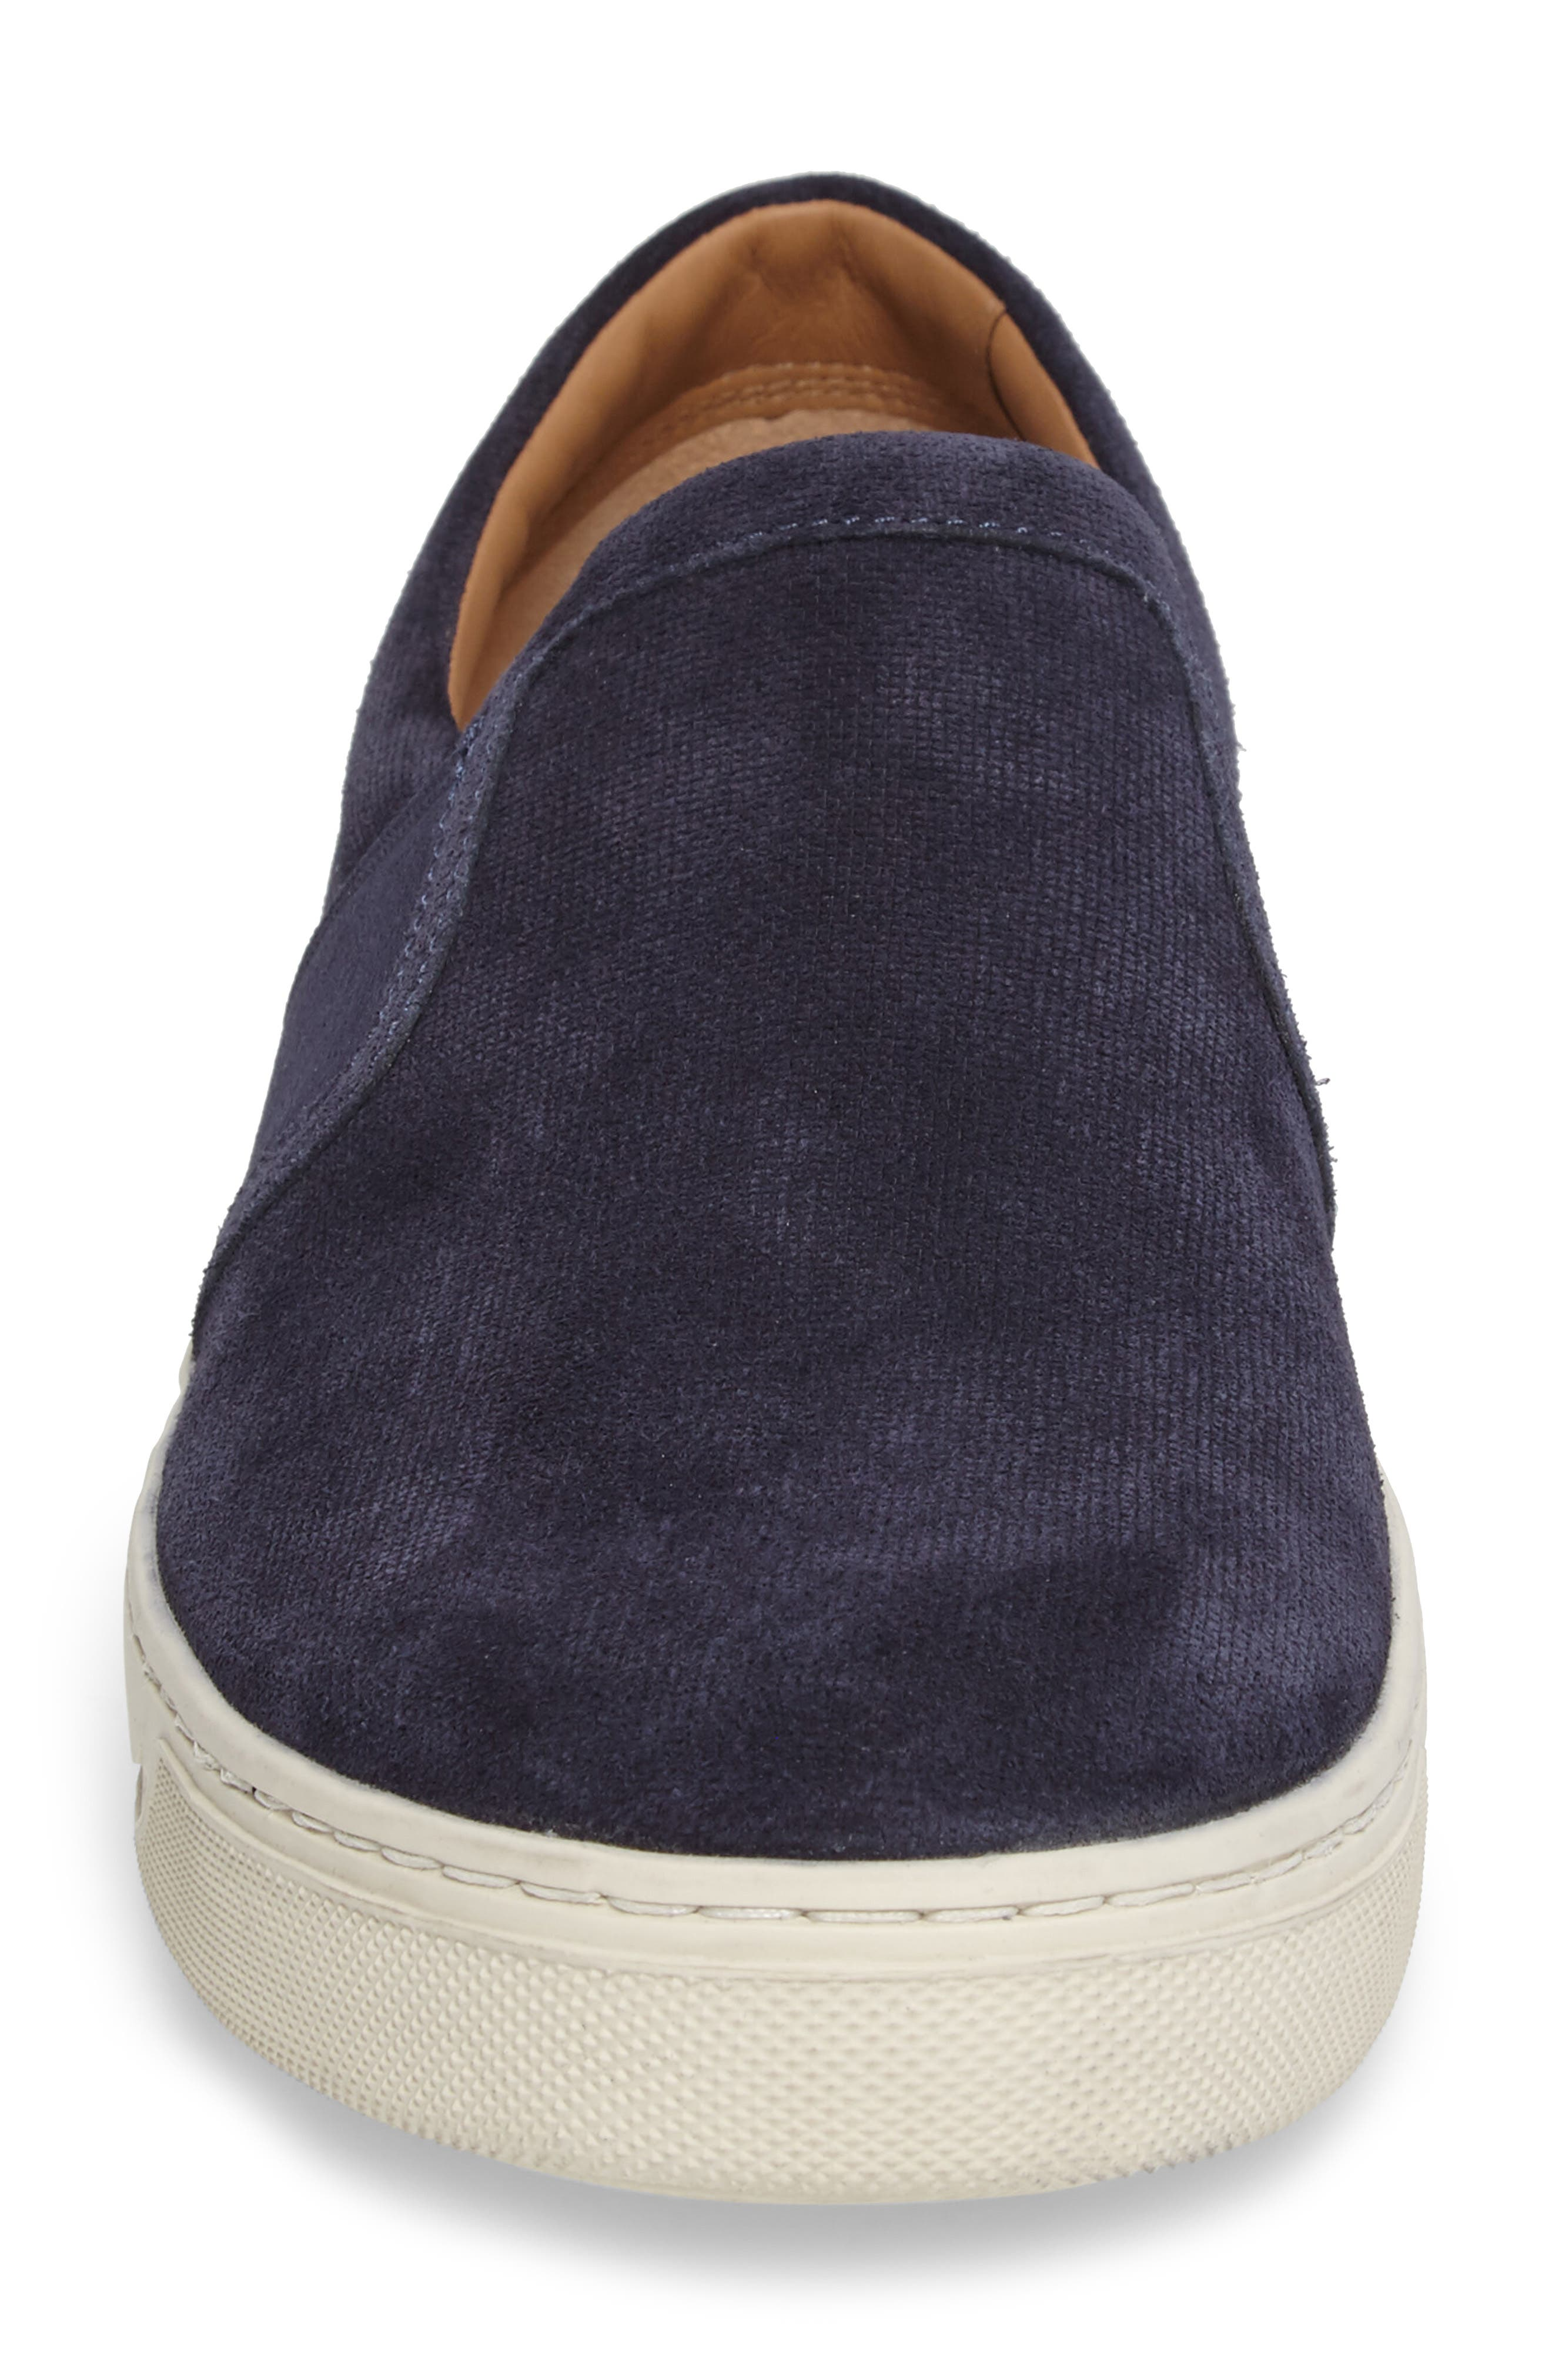 Adler Slip-On,                             Alternate thumbnail 4, color,                             Coastal Suede